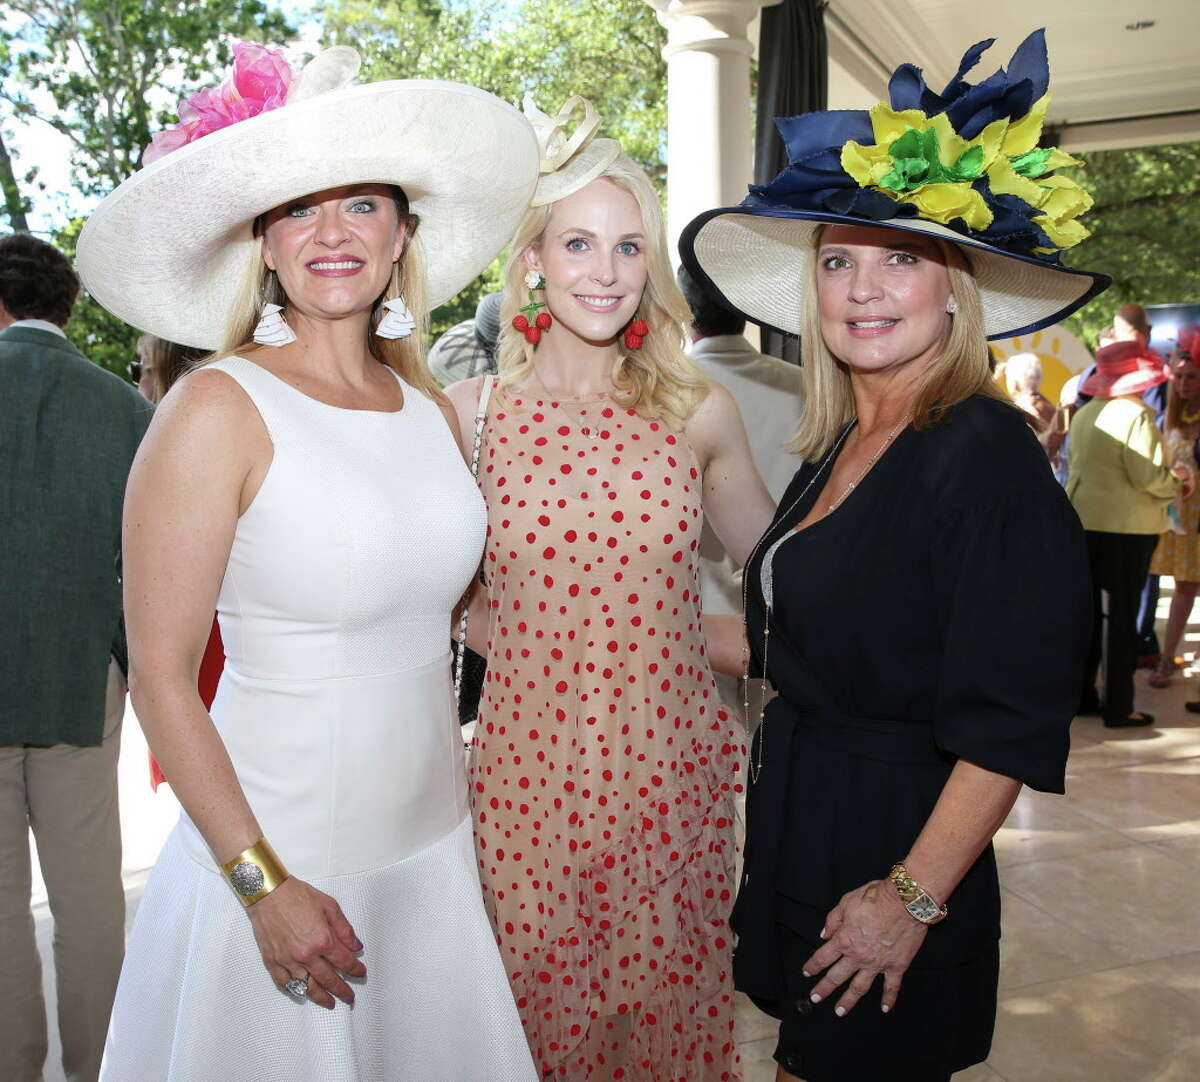 Rachel Regan, from left, Kathleen Jennings and Melissa Juneau pose for a photograph at the 2nd Annual Hats, Hearts & Horseshoes benefiting Bo's Place on Saturday, May 5, 2018, in Houston.